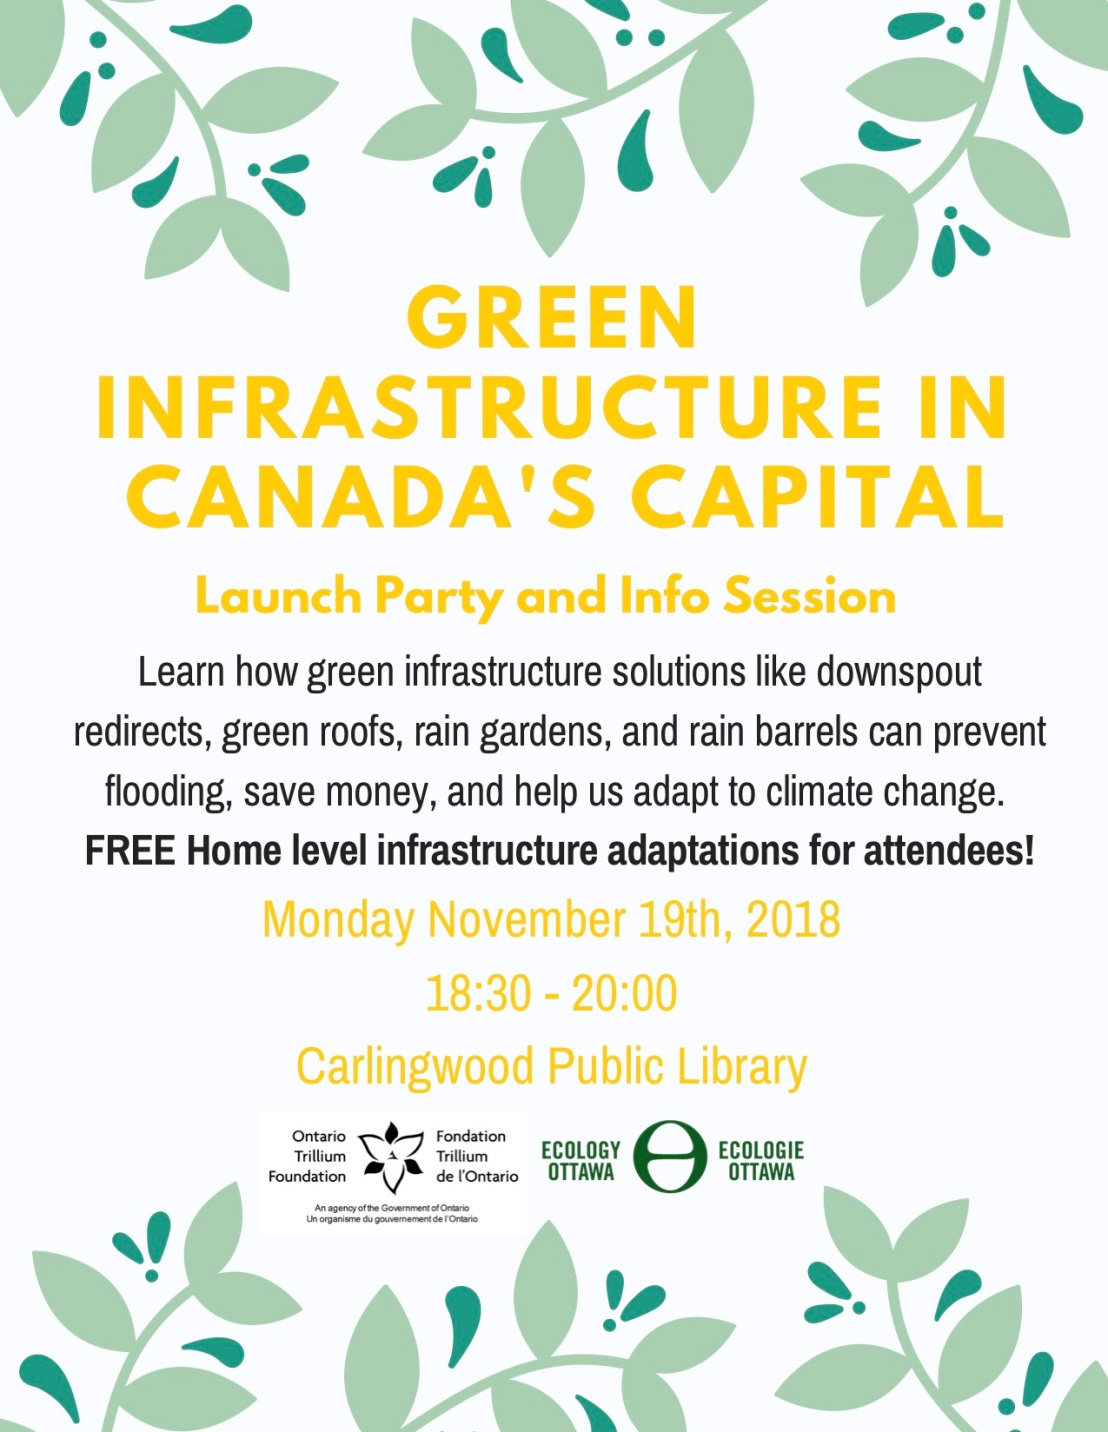 Greeninfrastructure 101